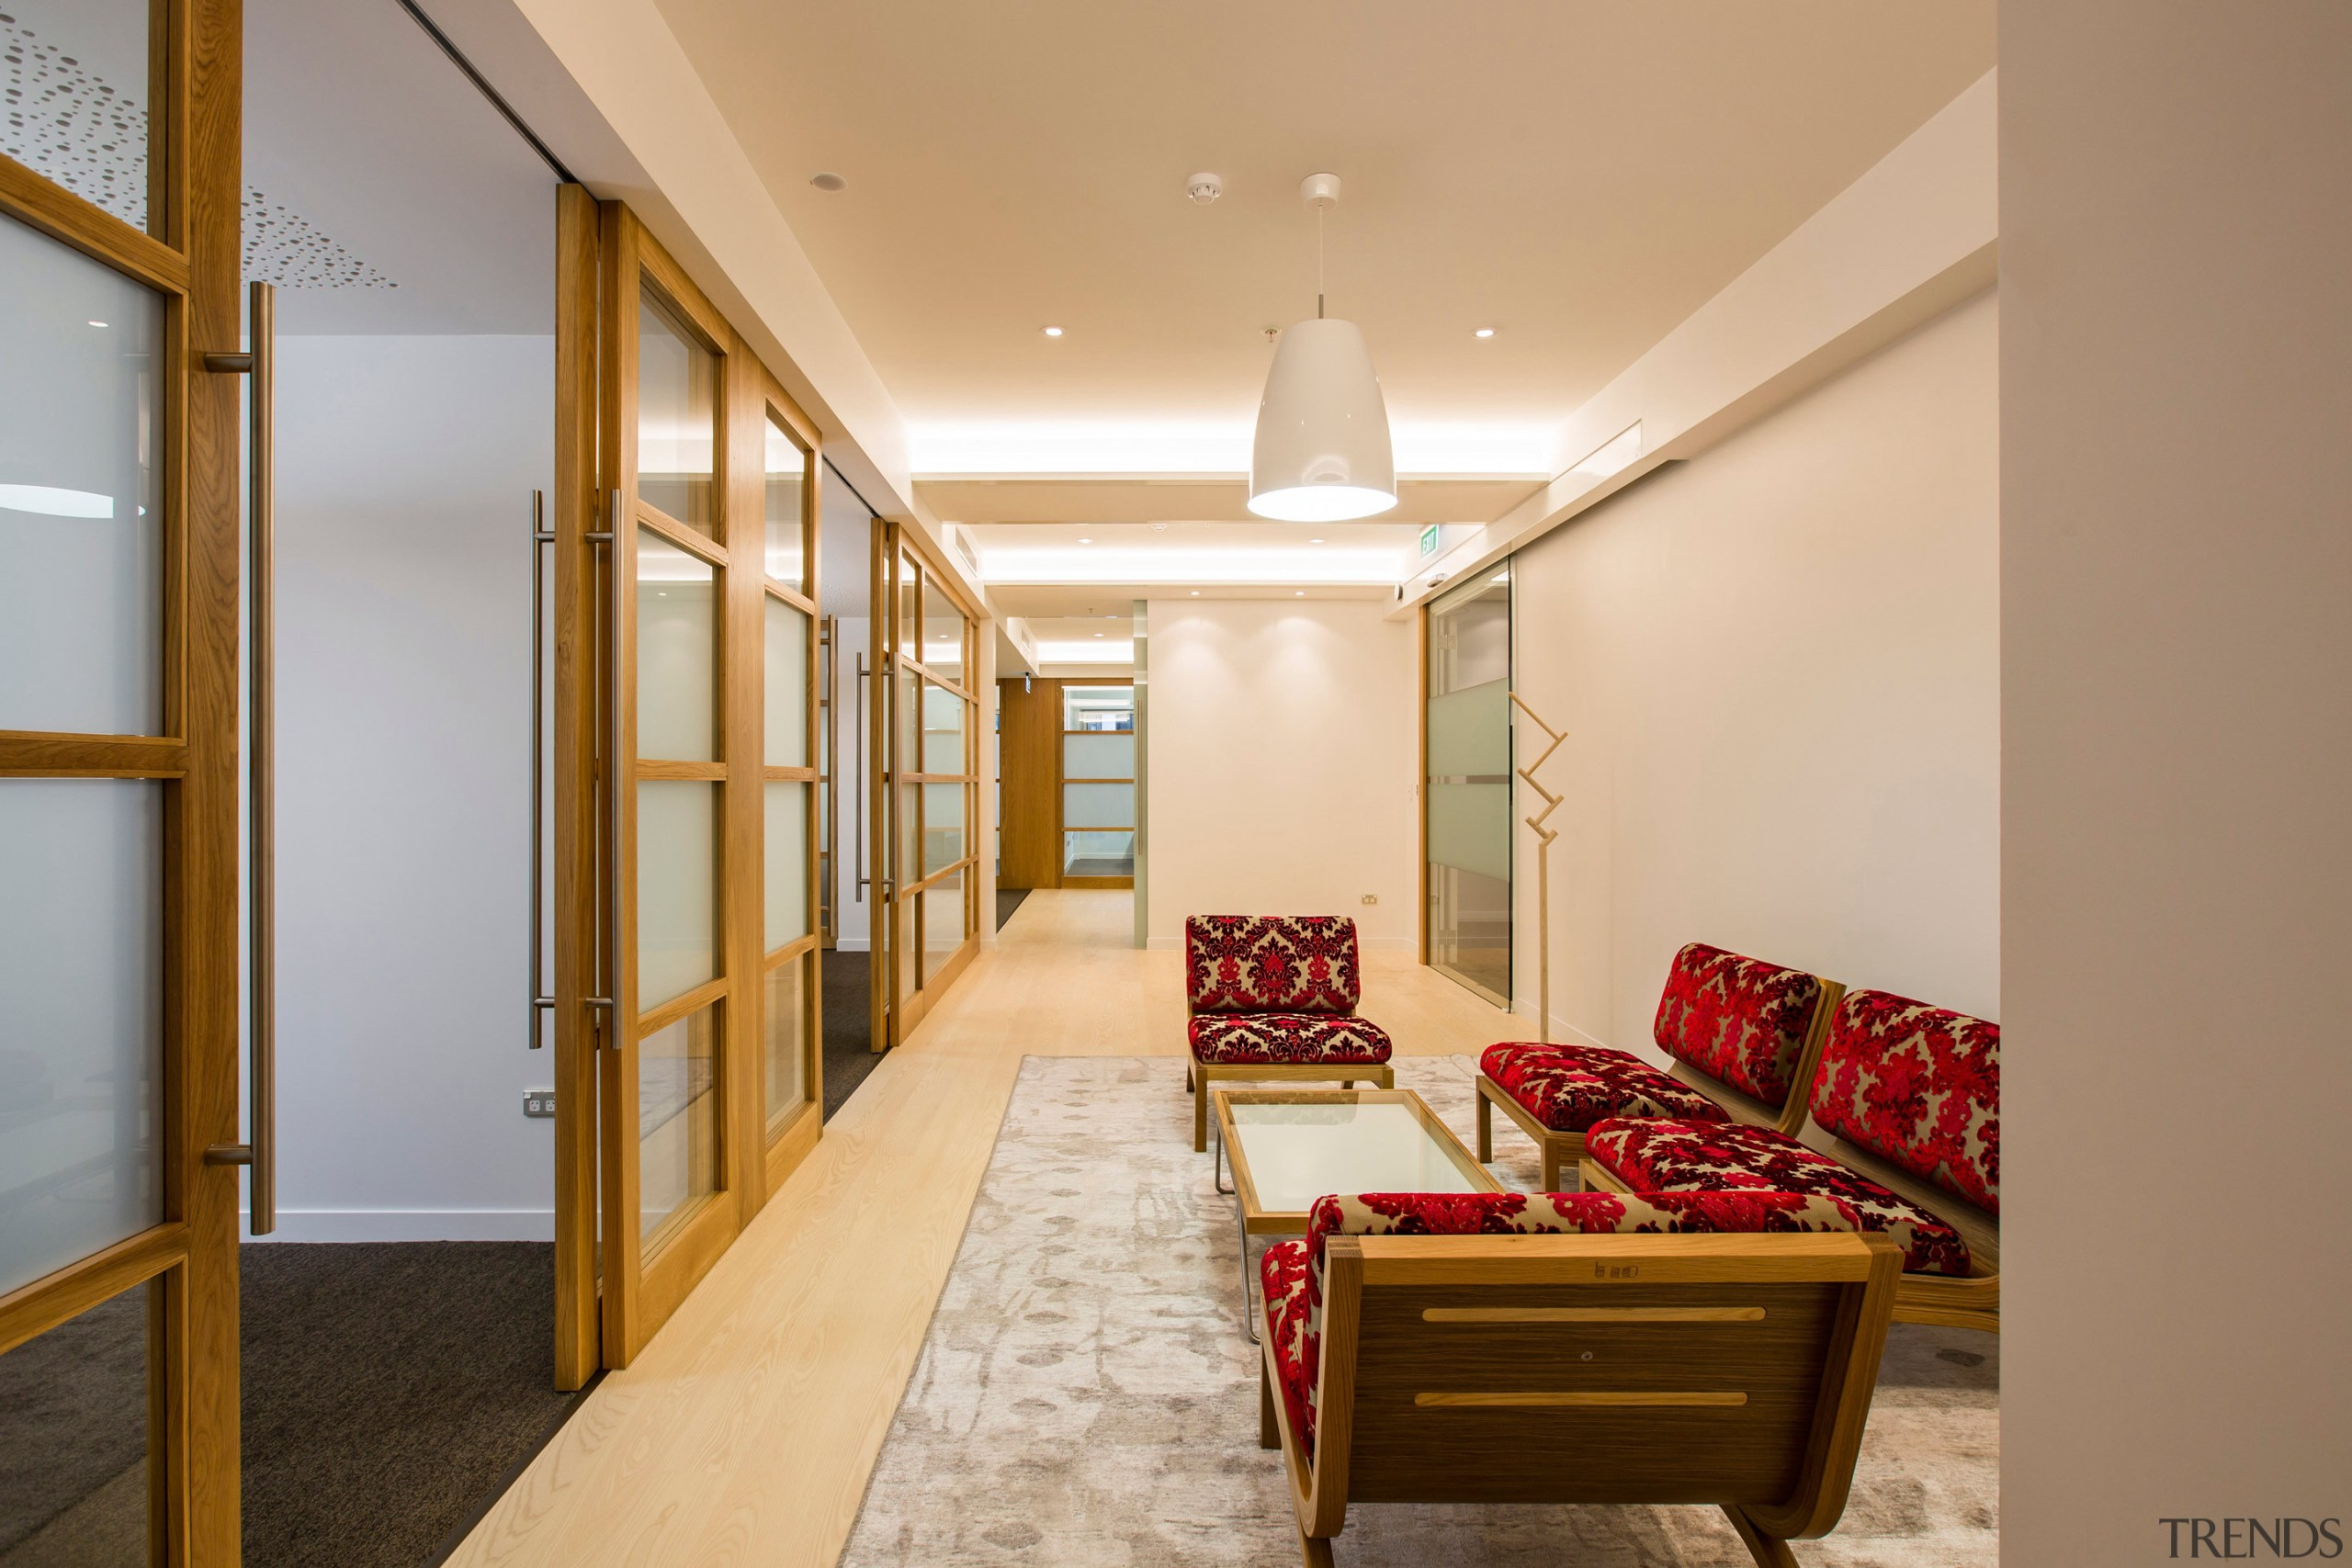 Our clients required a high quality fitout providing ceiling, interior design, living room, lobby, real estate, room, brown, orange, gray